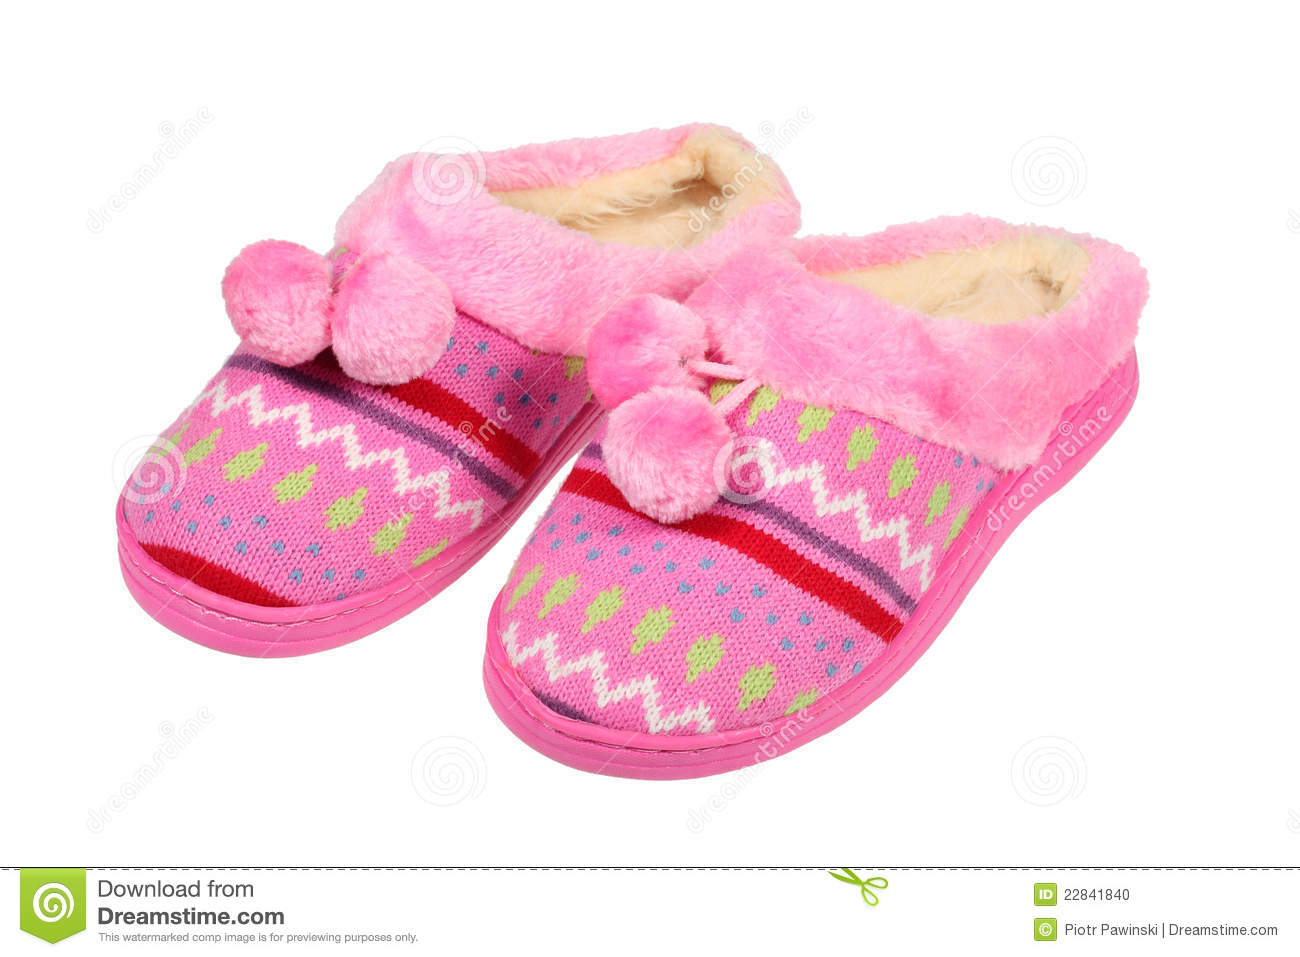 Pink slippers isolated over white with clipping path.